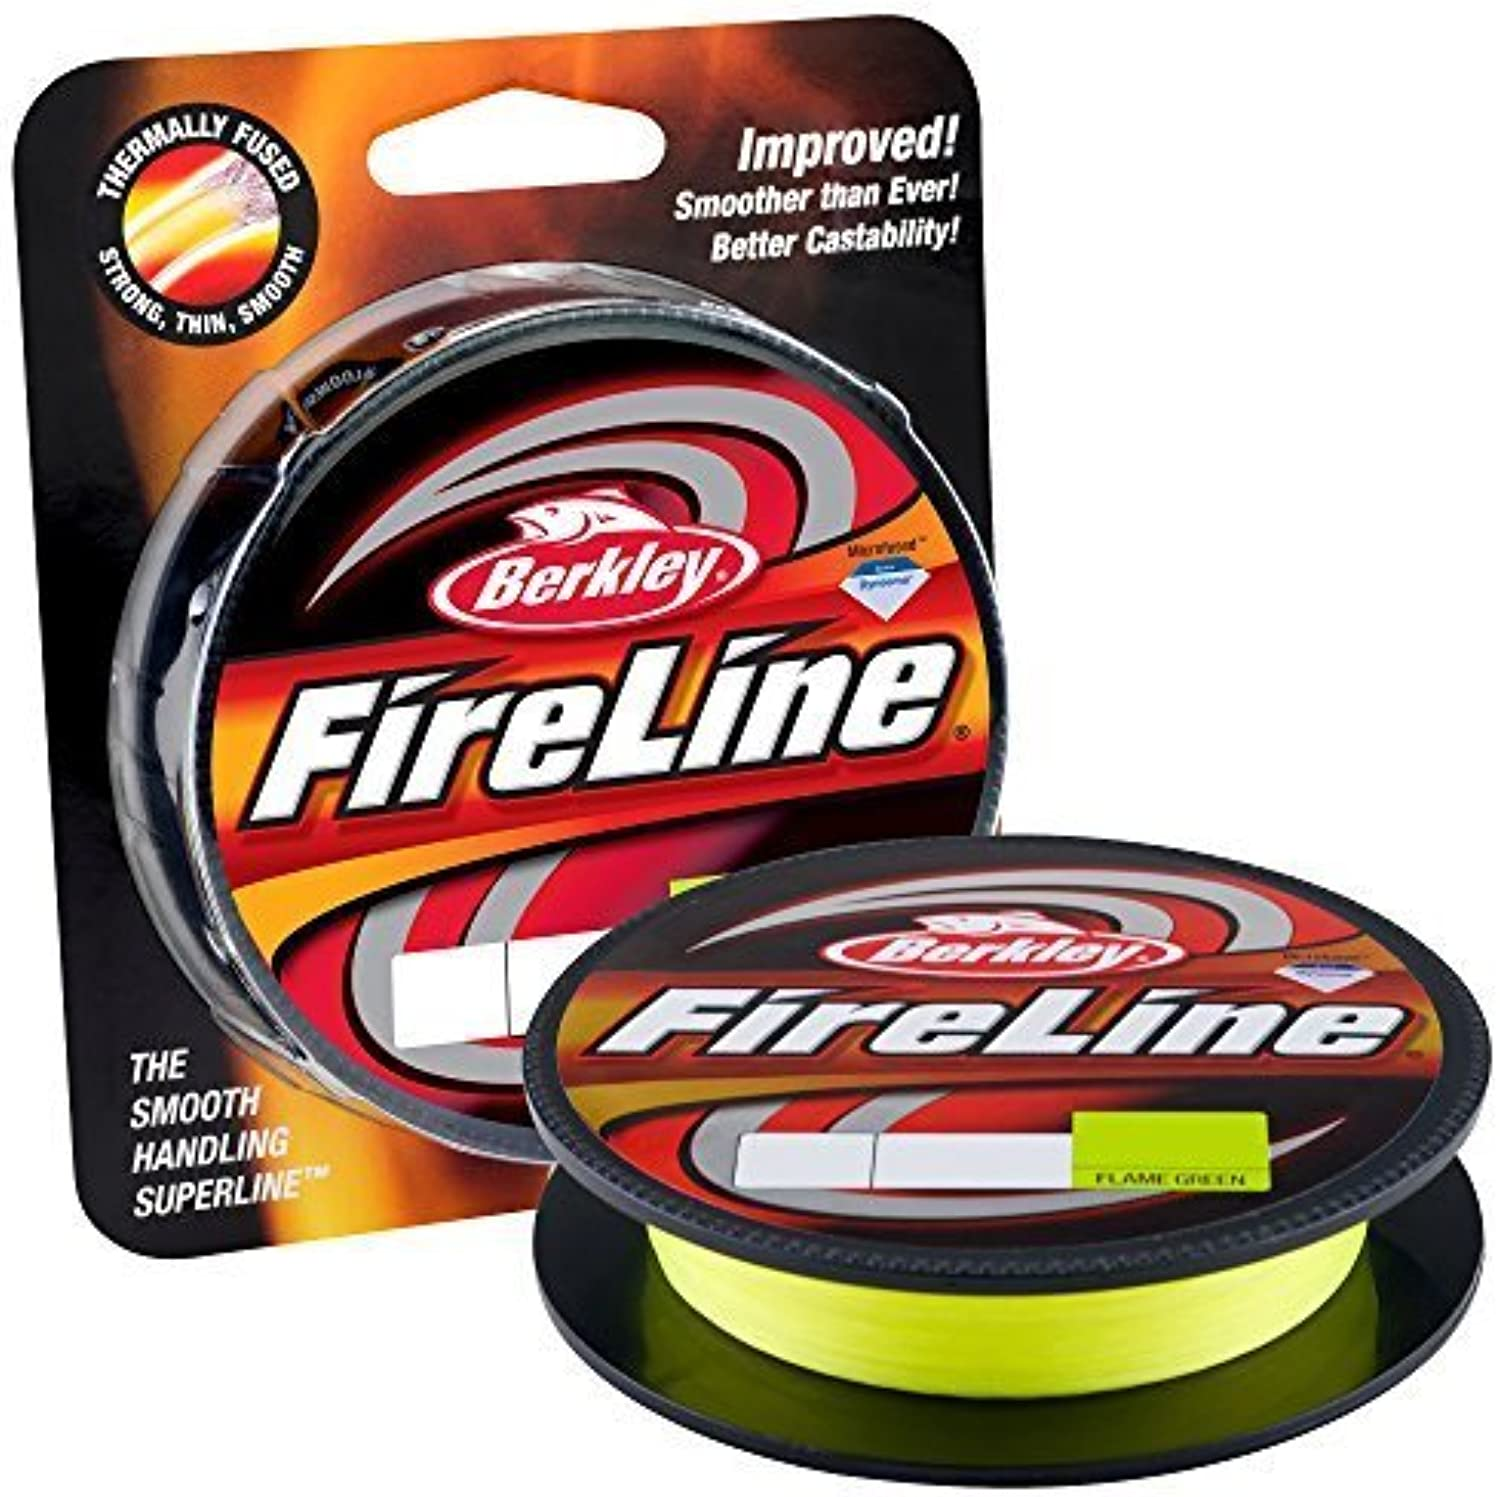 Berkley Fireline Fused Original Fishing Line, Flame Grün, 125 Yd. 20 lb. by Berkley B0155S08IU  Feinbearbeitung